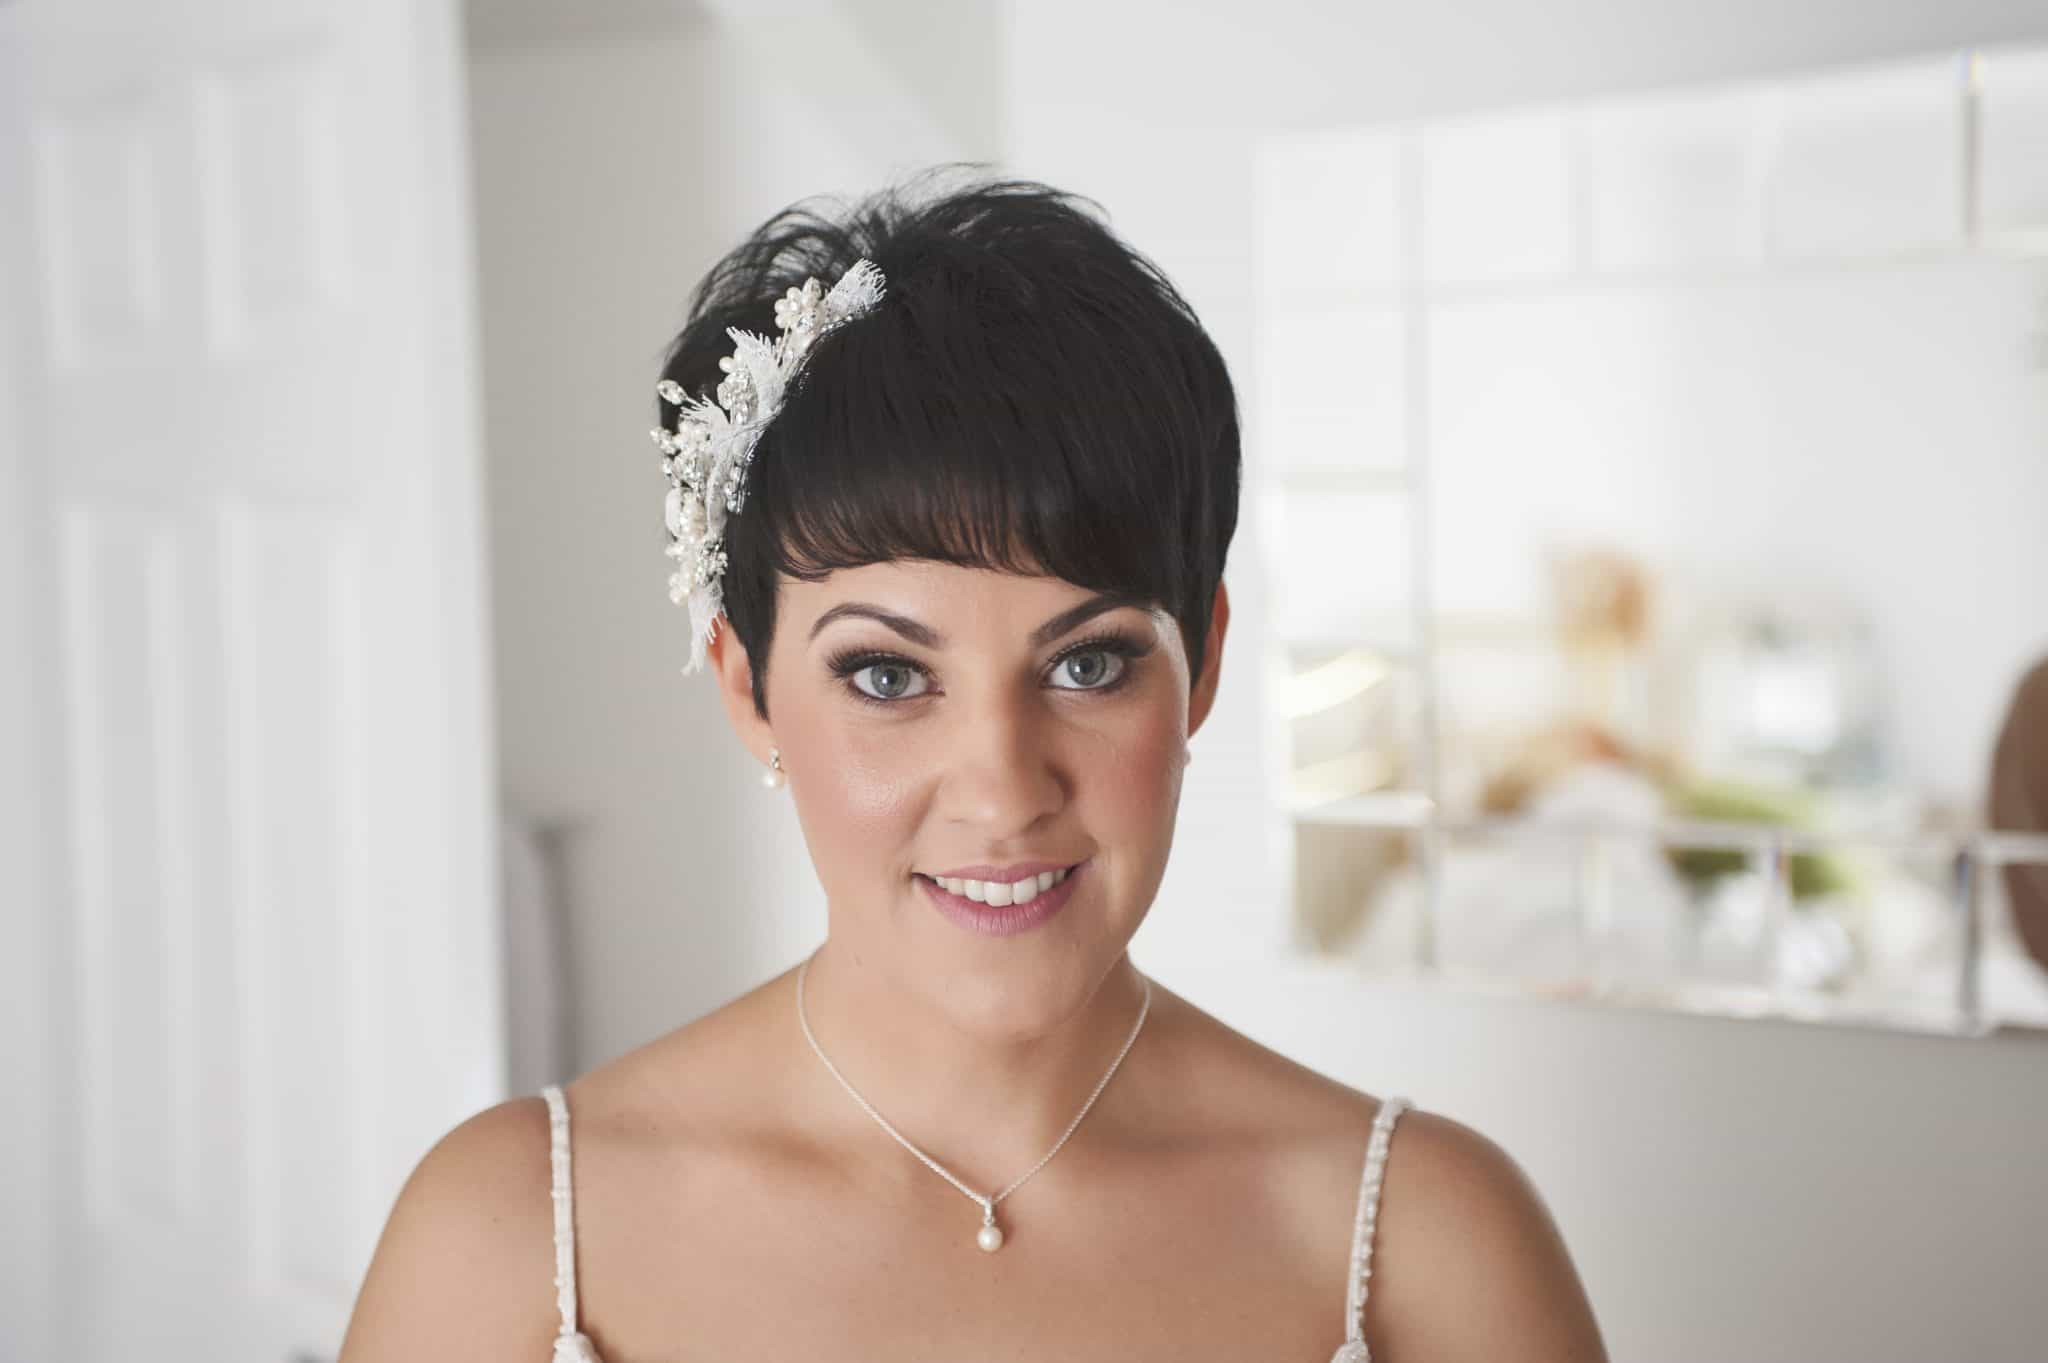 Bride in bedroom looking straight at camera smiling